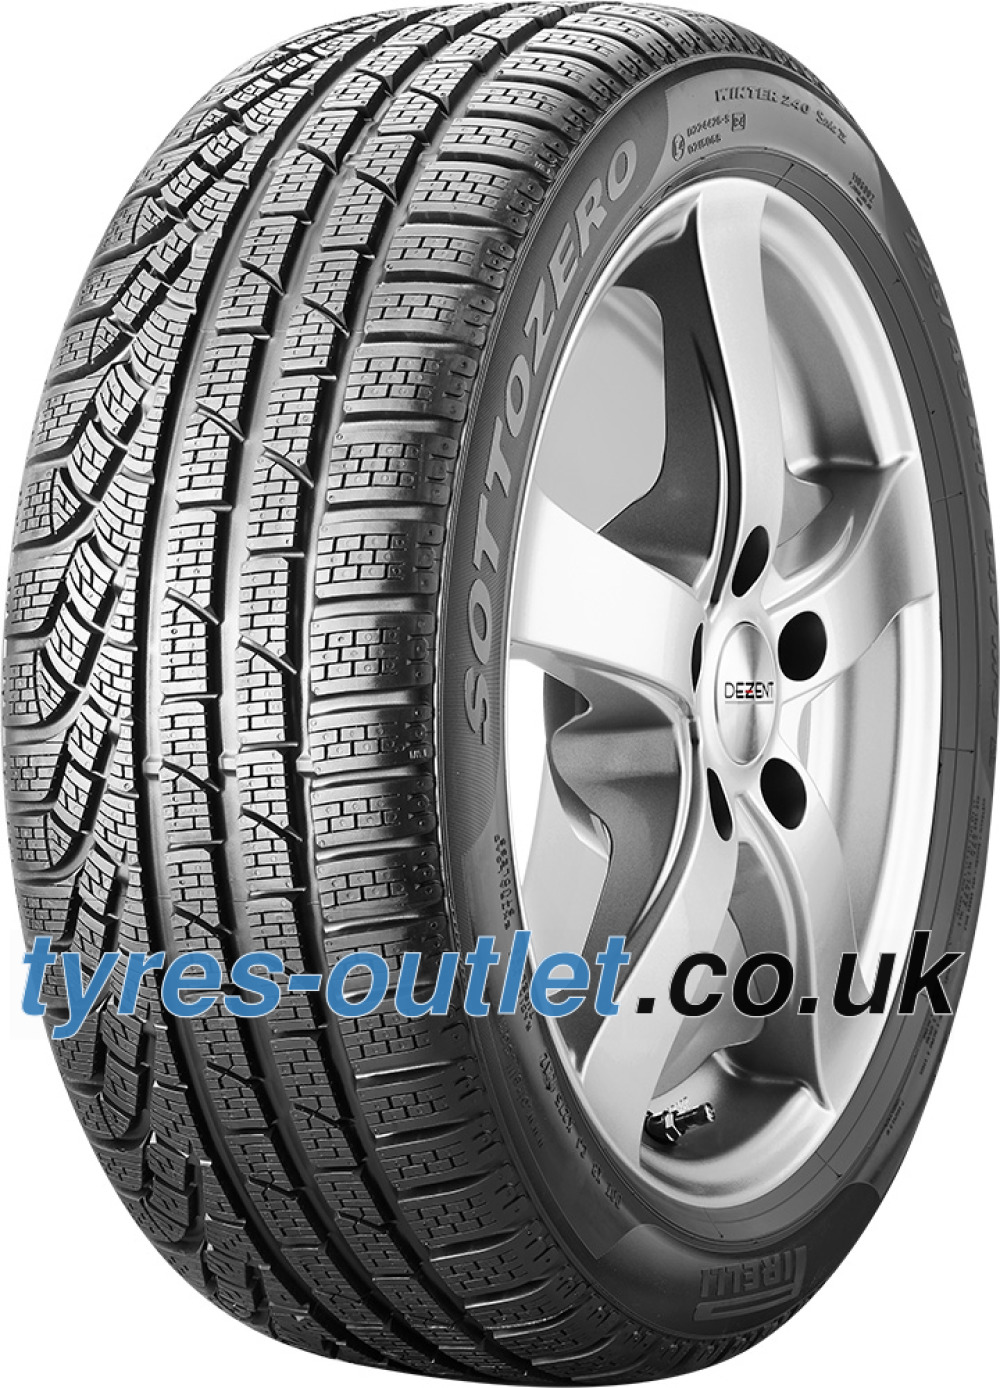 Pirelli W 240 SottoZero S2 ( 225/45 R17 94V XL , with rim protection (MFS) )